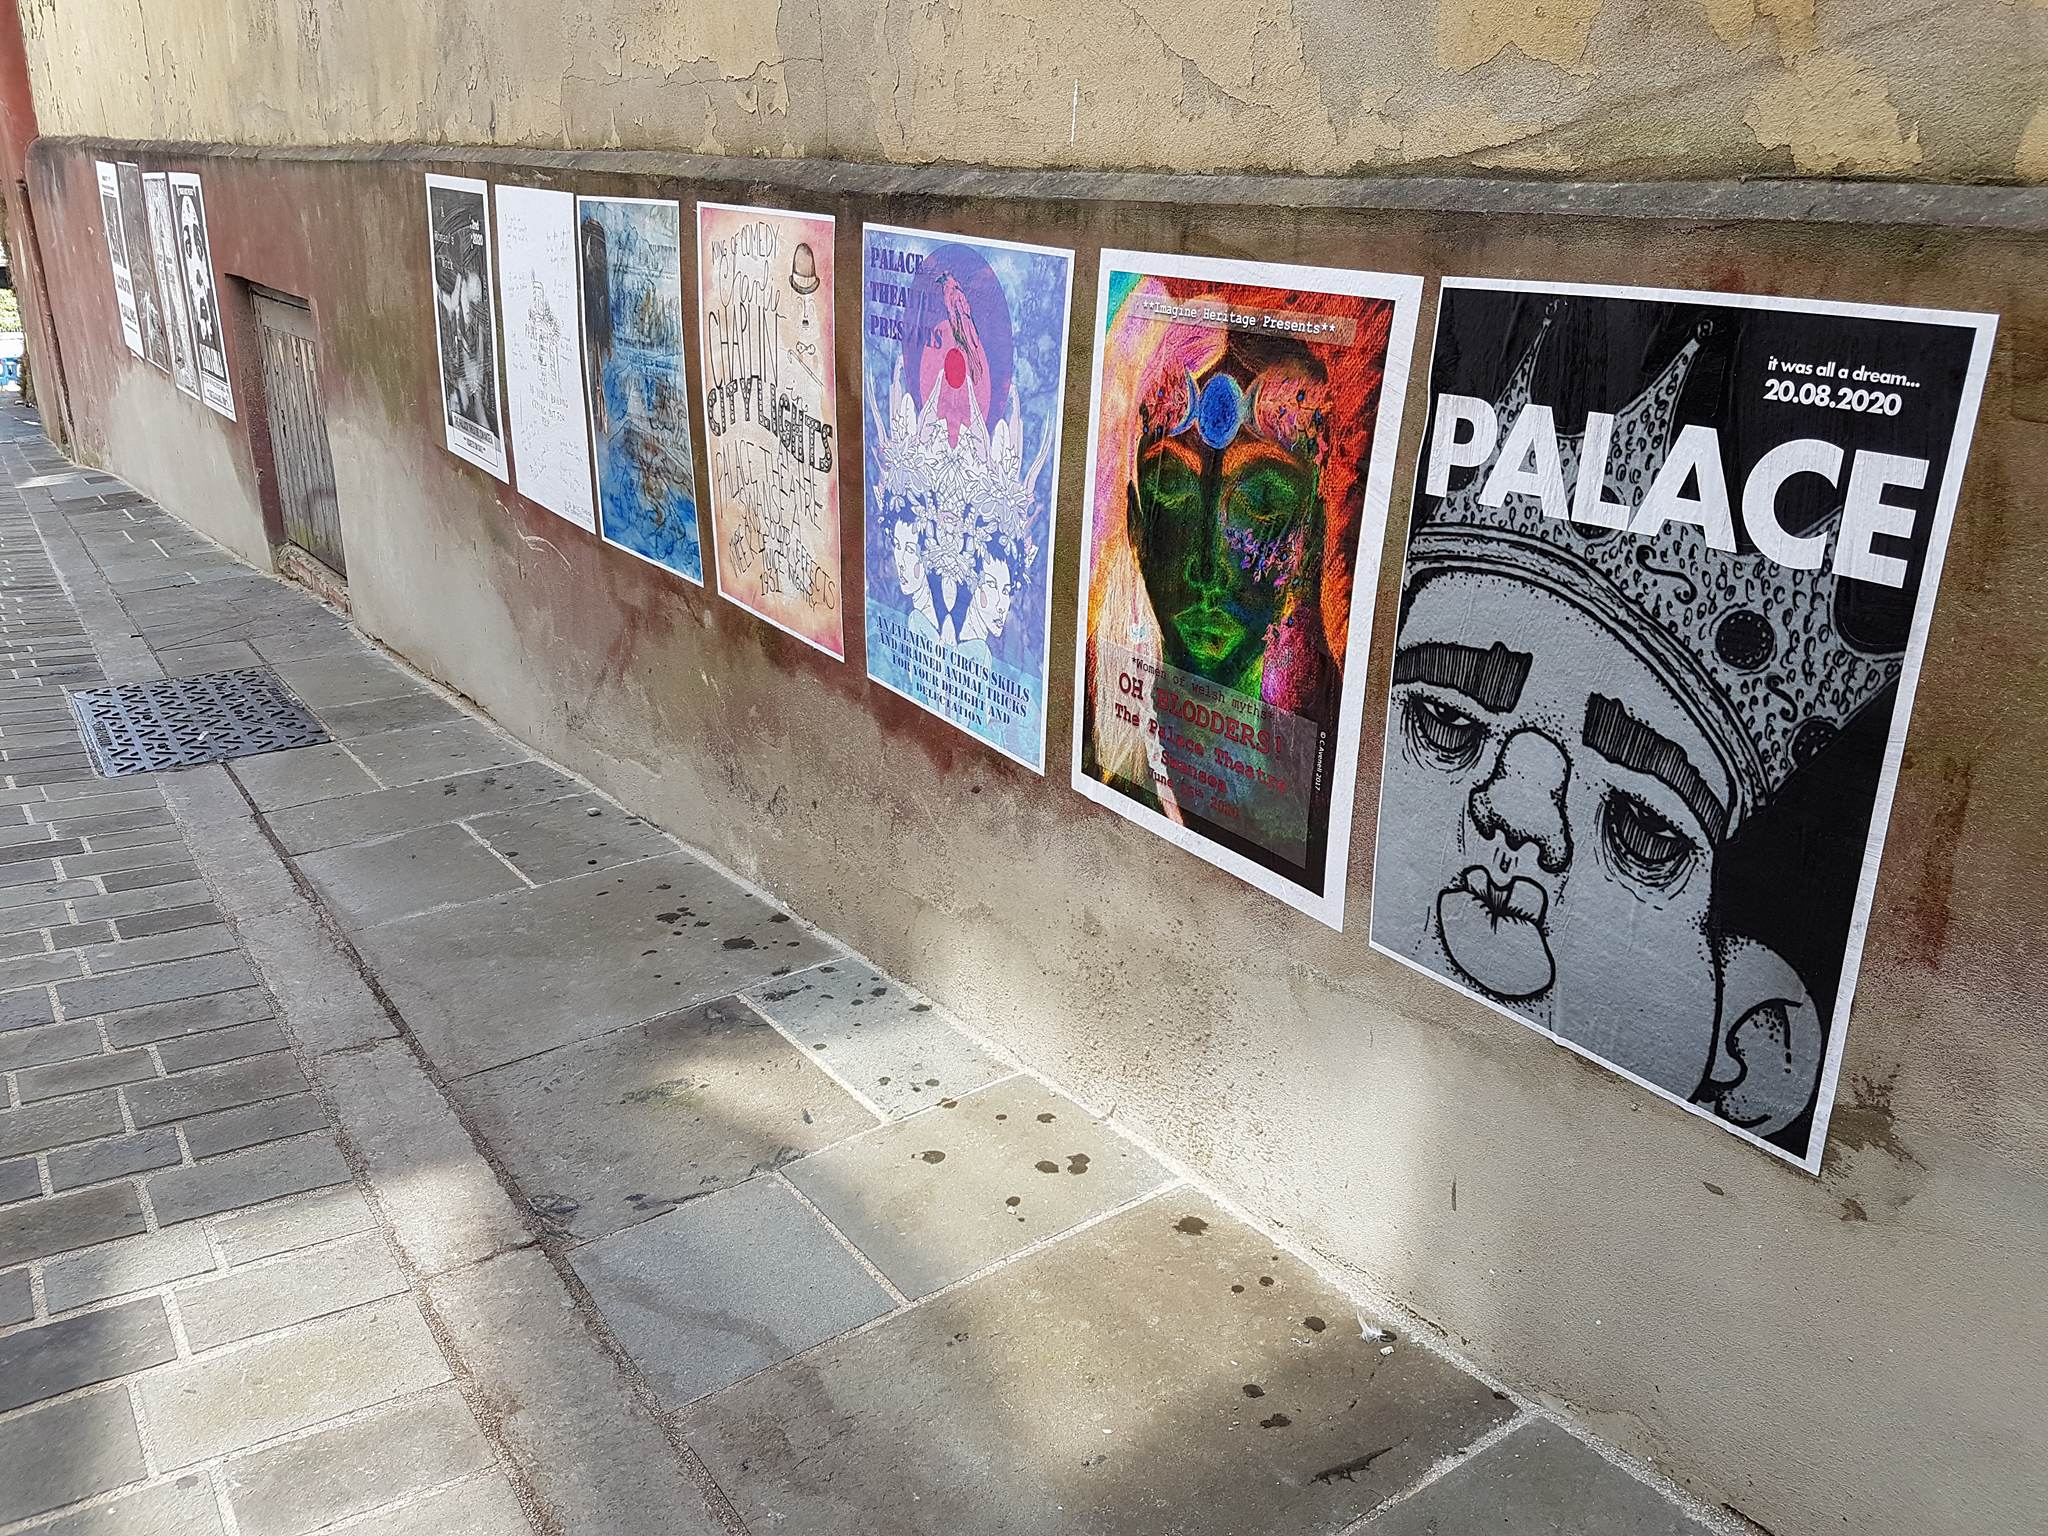 Palace_Theatre_Paste_Up_Install_Day_03_Photograph_by__Dan_Thompson.jpg